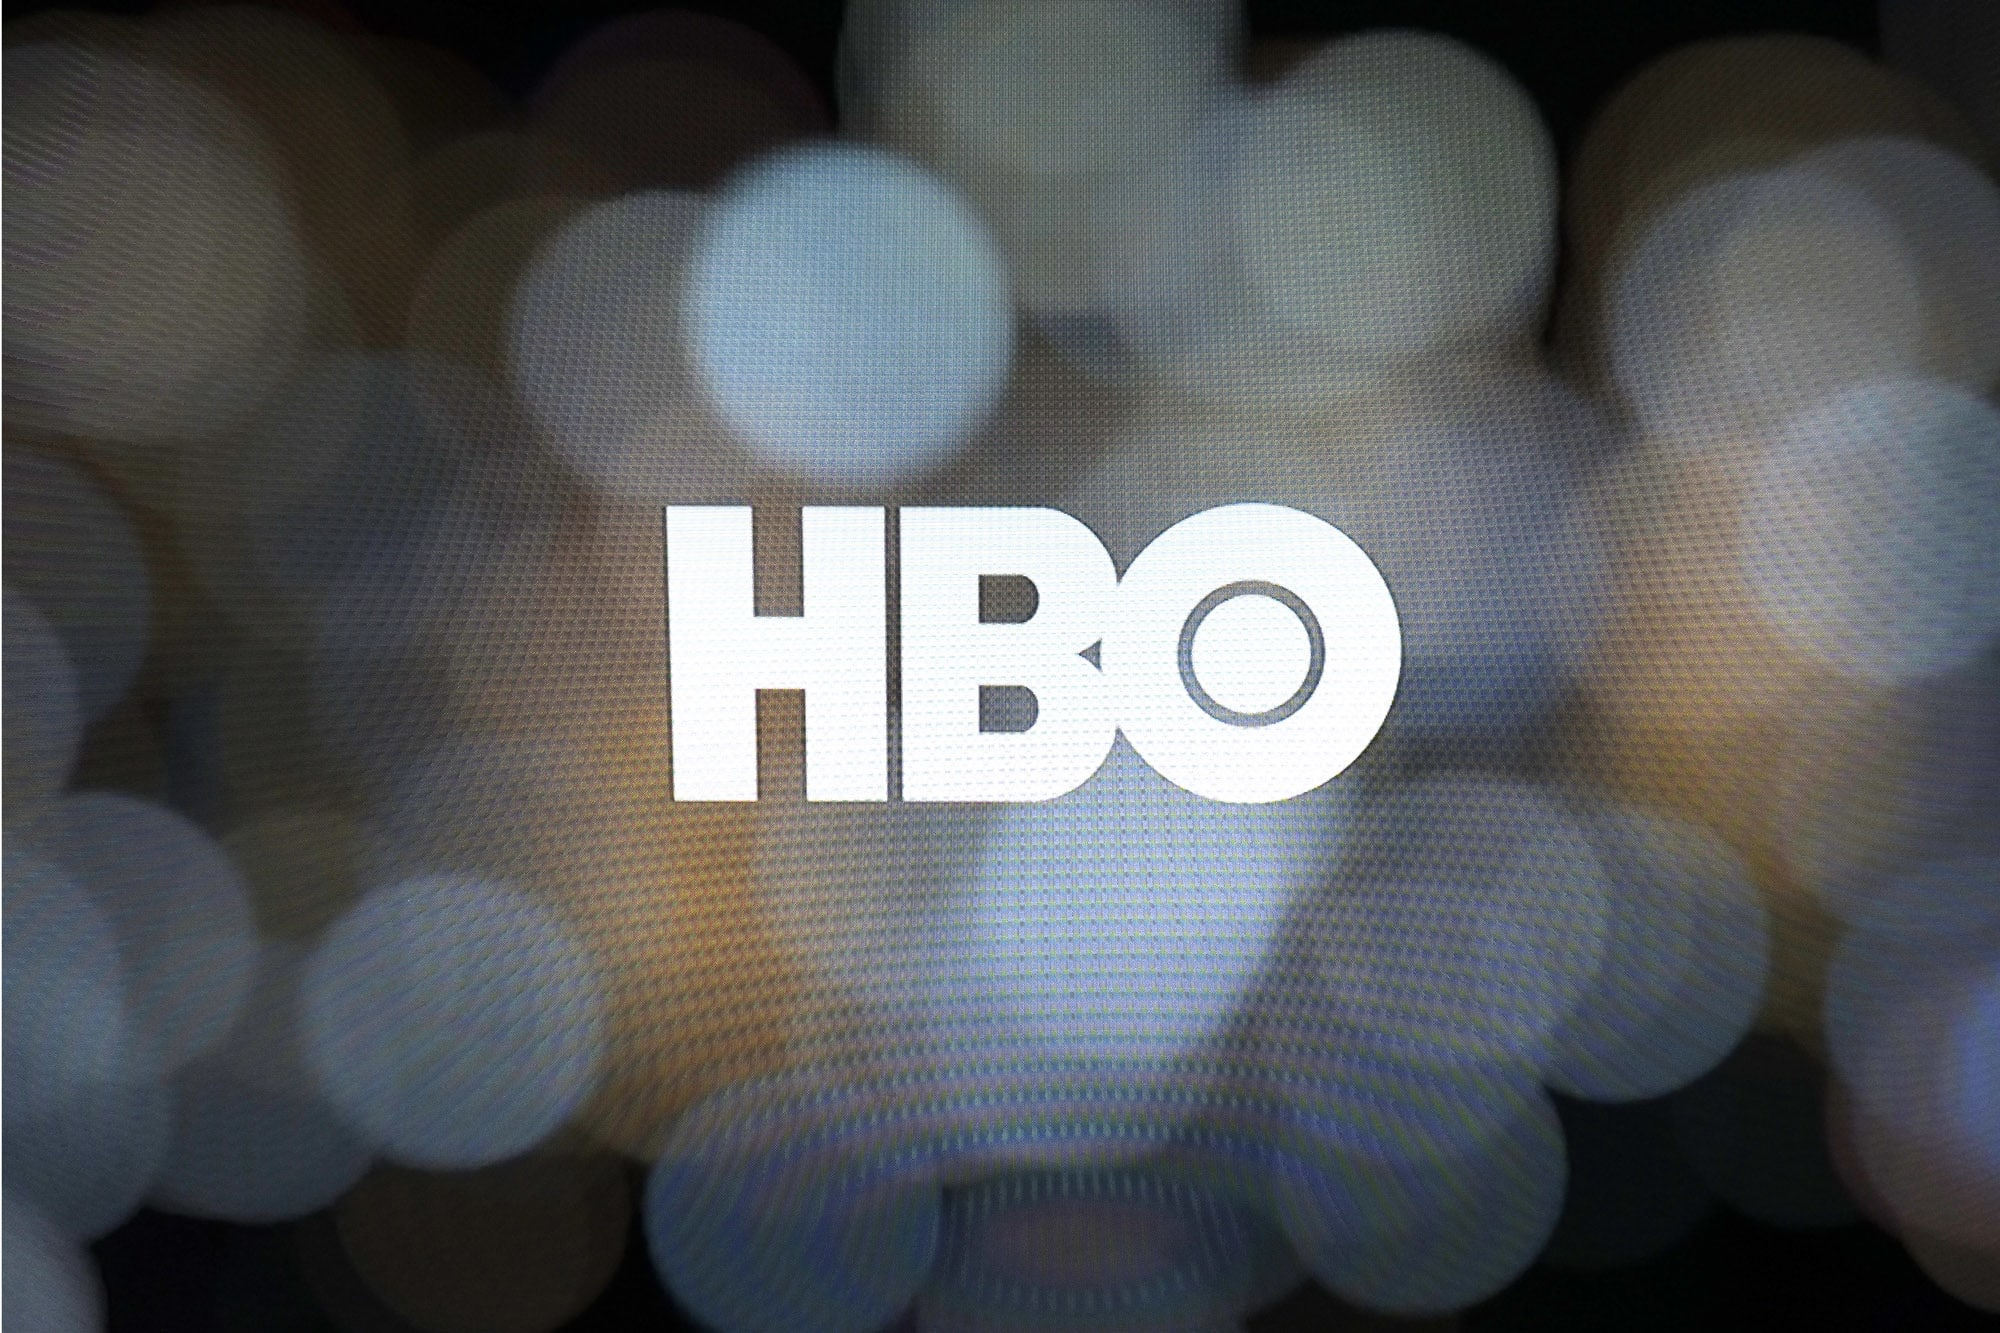 HBO Max is WarnerMedia's new live-streaming service